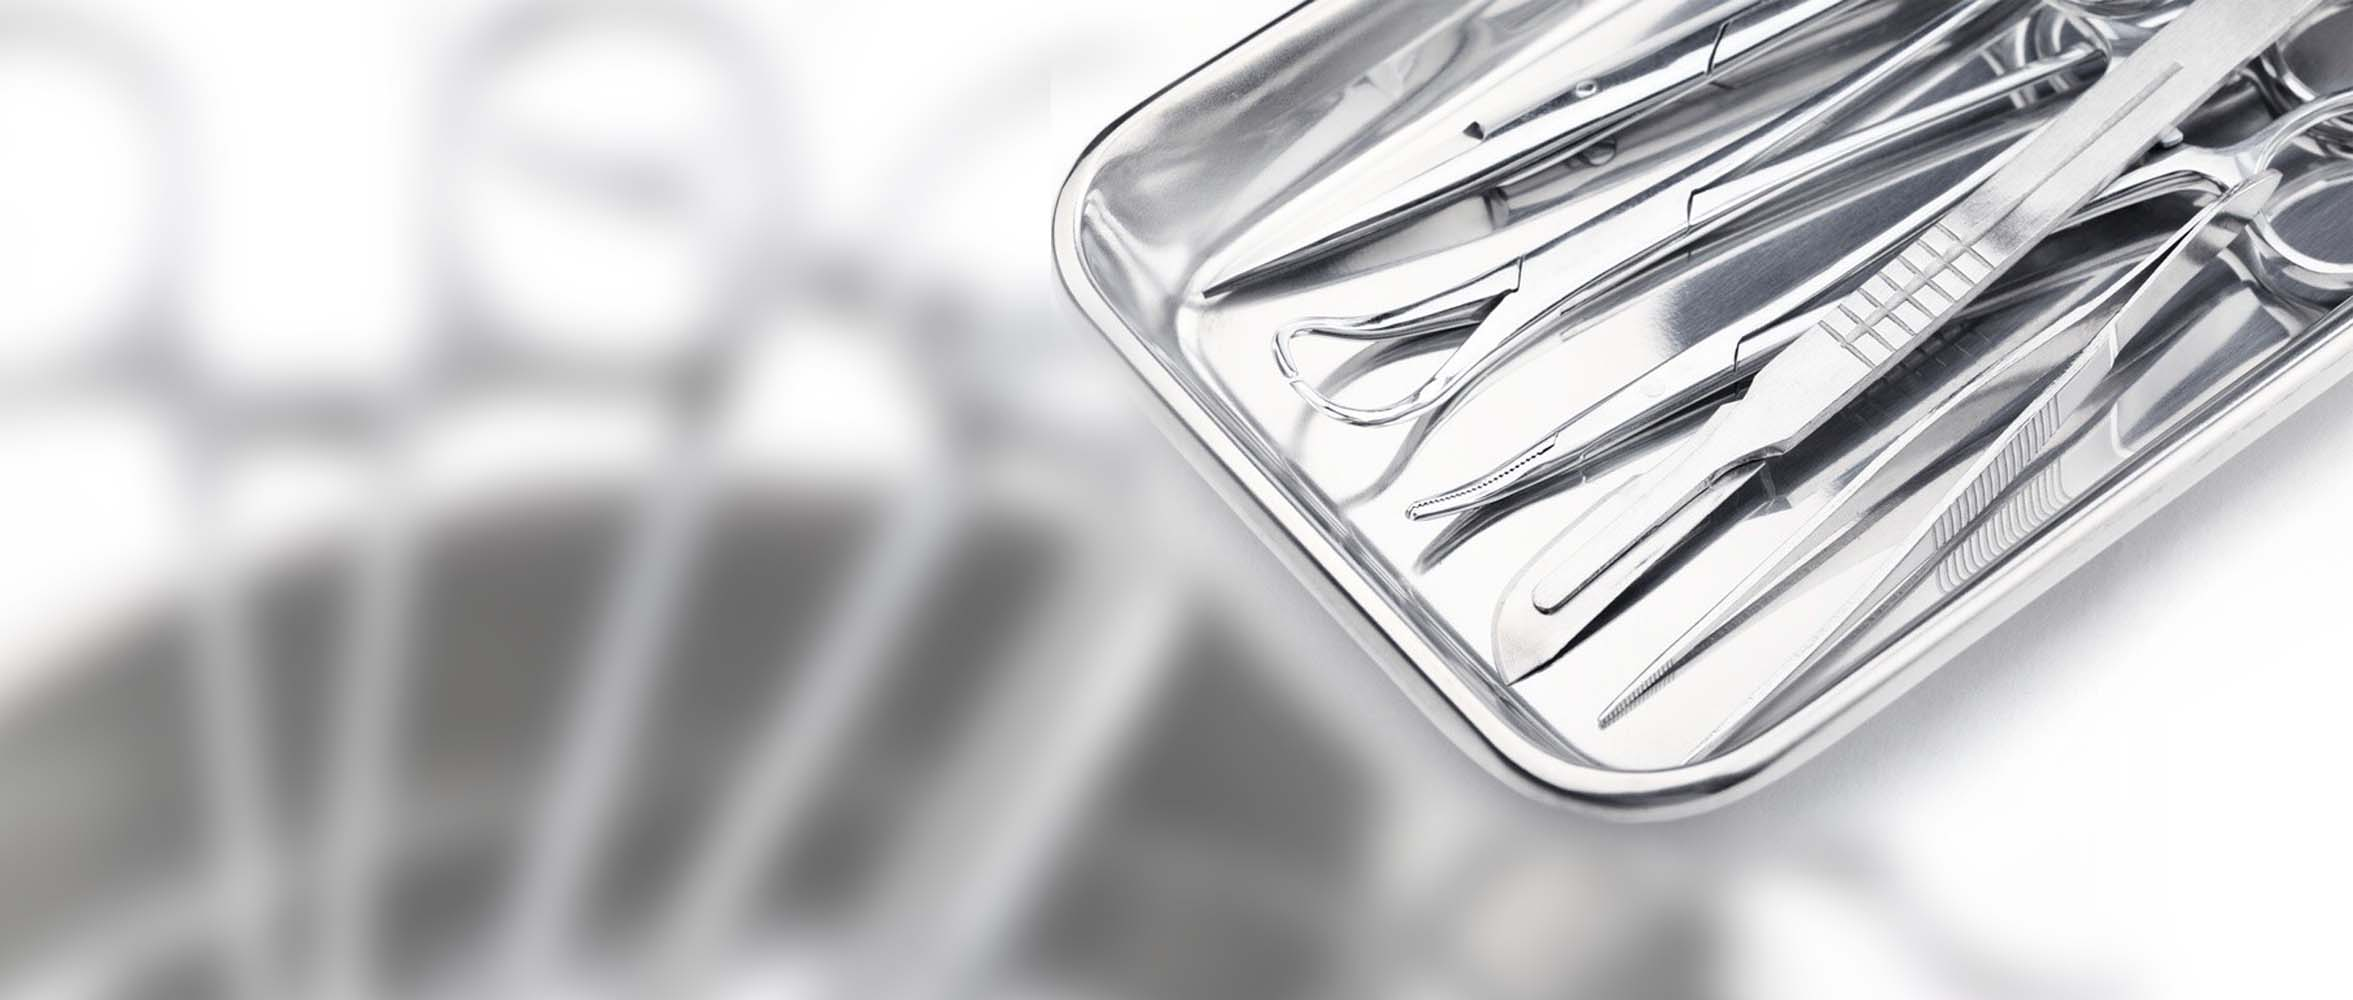 Surgical Instruments Slider